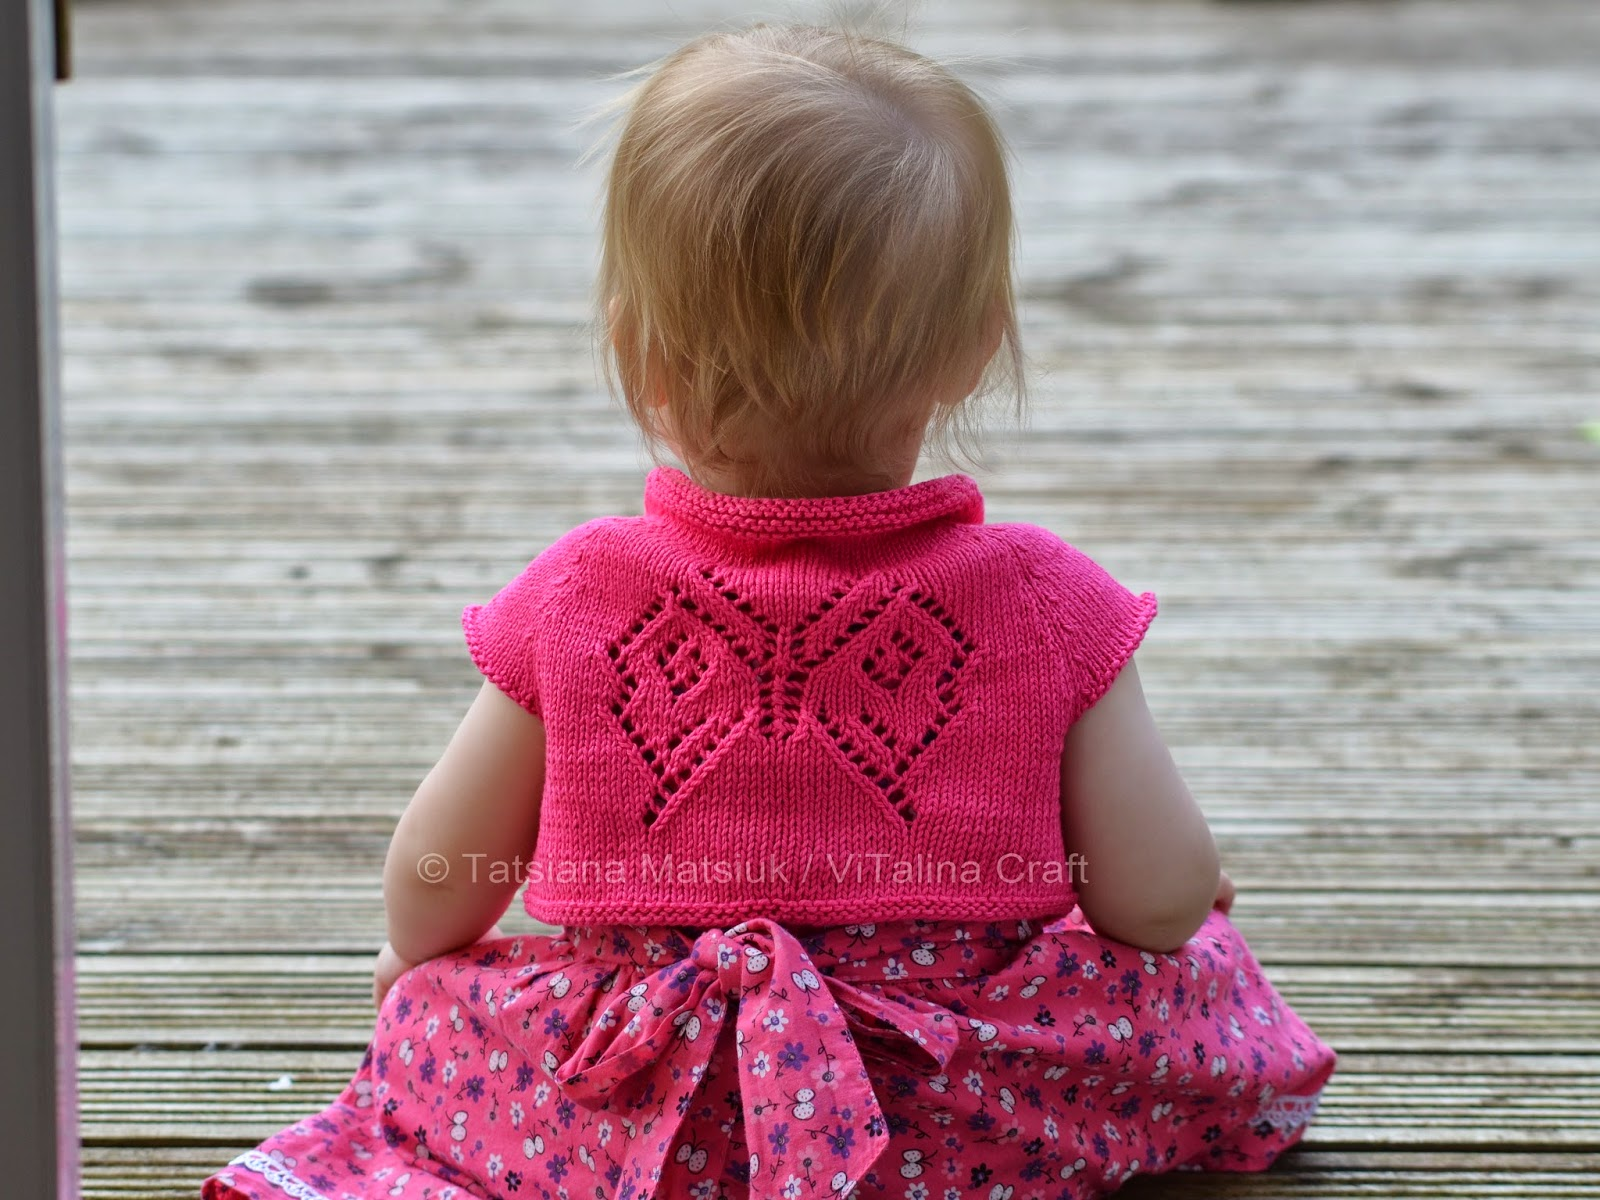 Papillon Bolero Knitting Pattern | ViTalina Craft